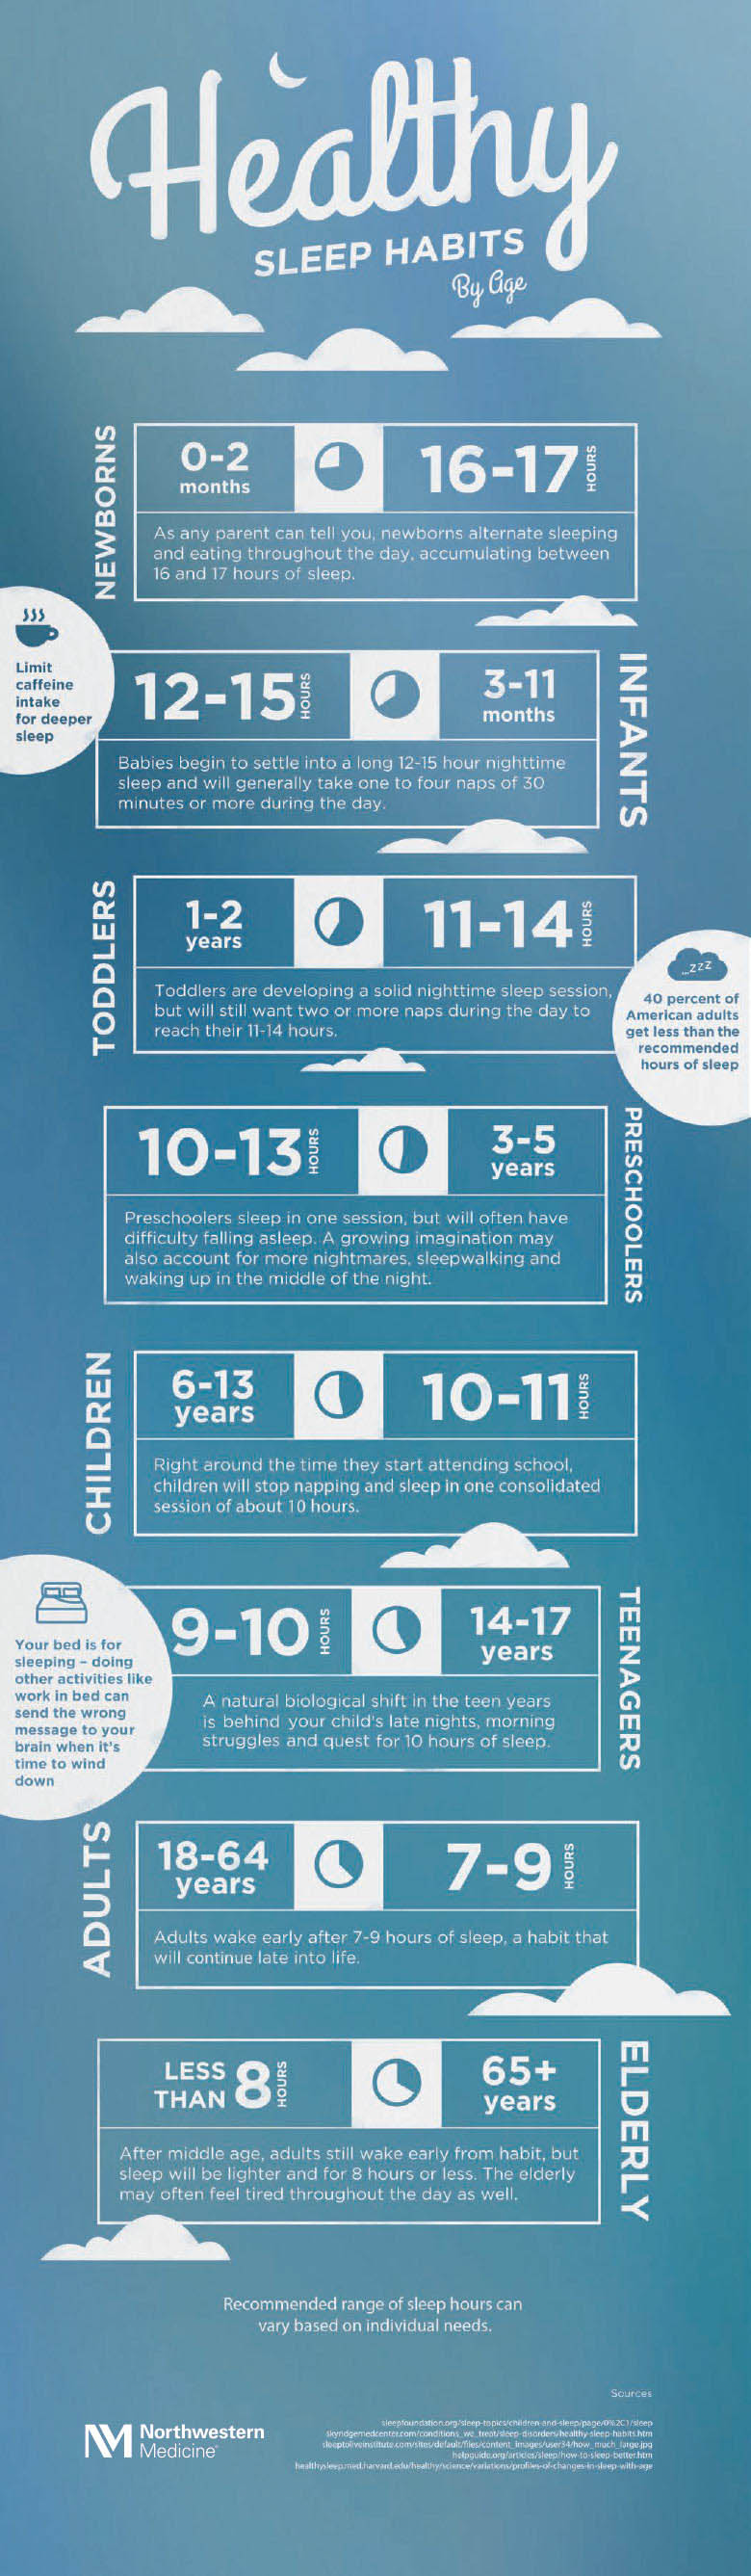 healthy sleep habits infographic